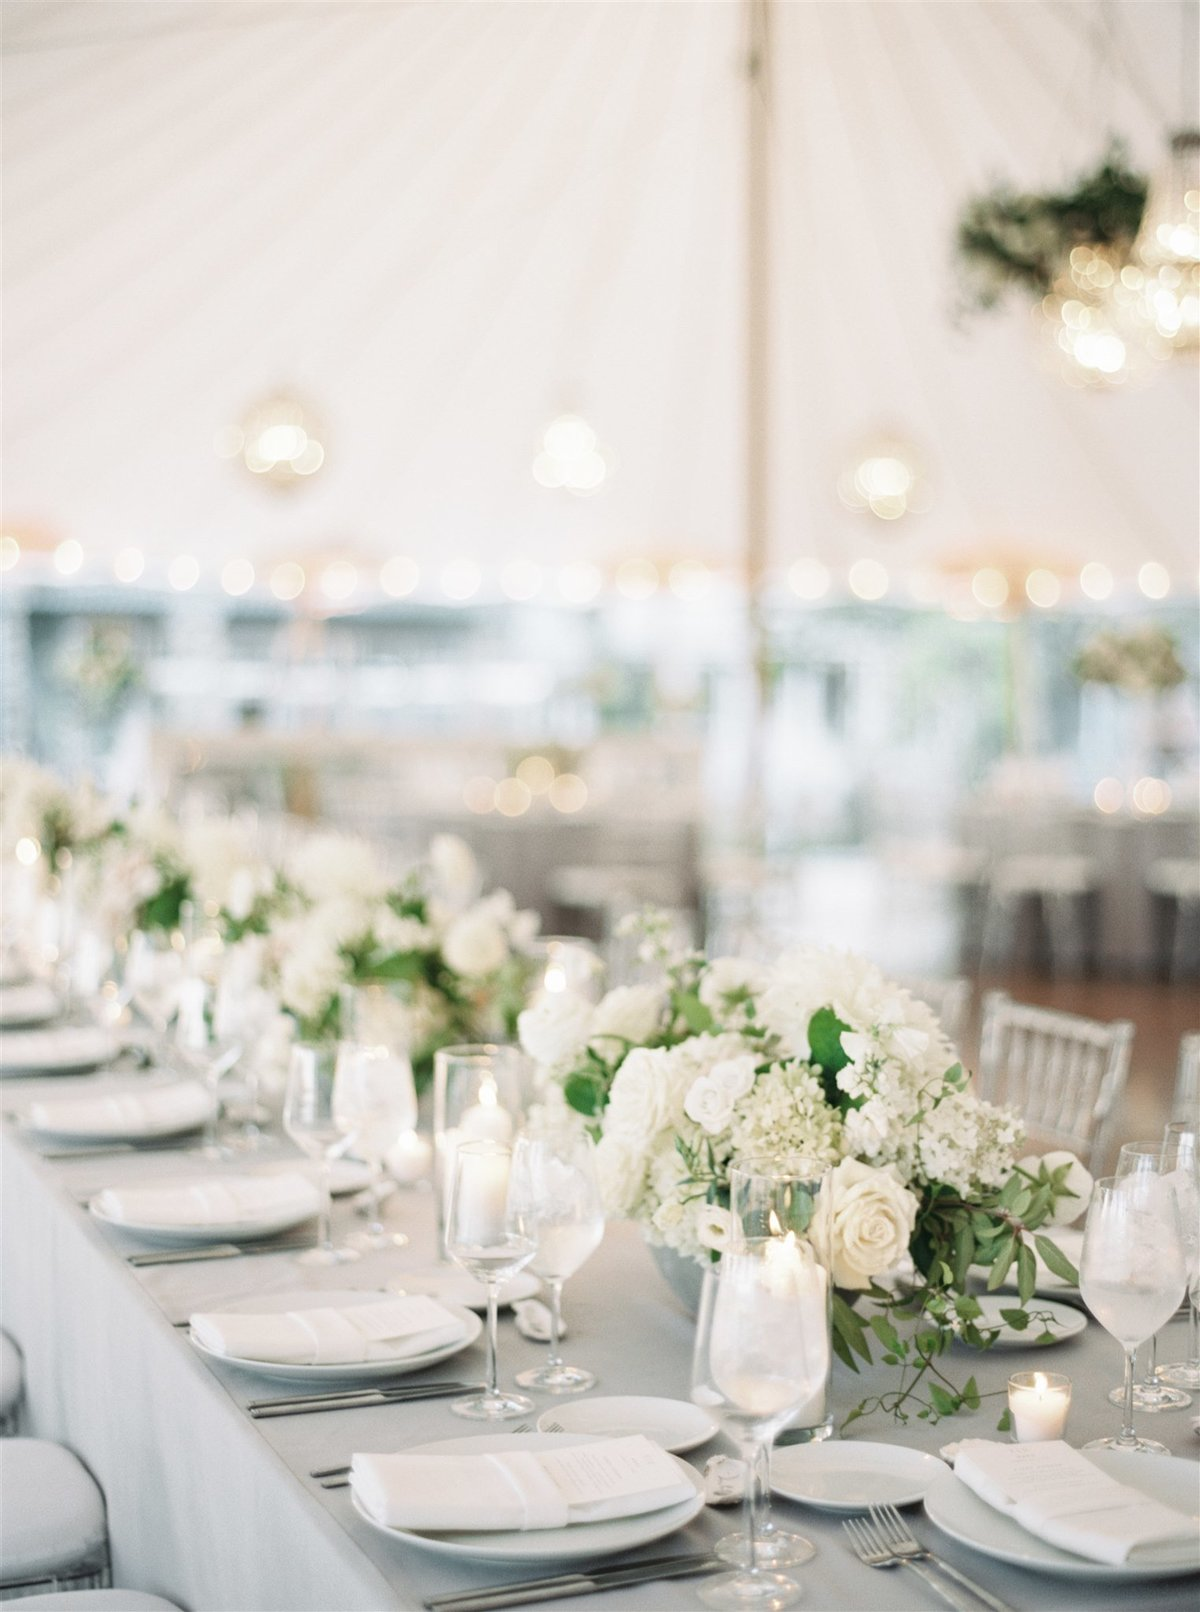 Cape Cod Tented Wedding for Tory and Ugo19